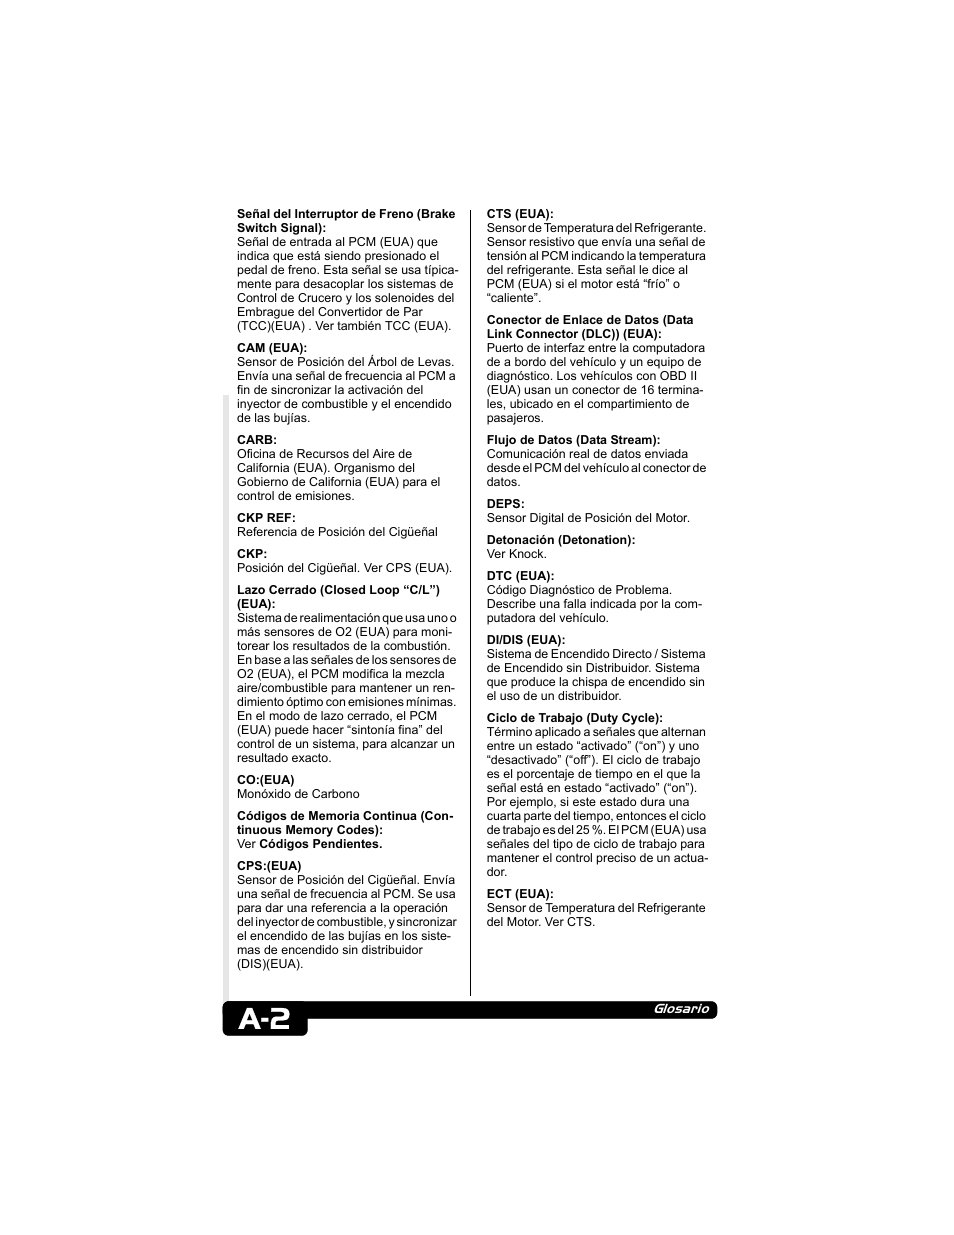 actron cp9135 obd ii autoscanner user manual page 106 120 rh manualsdir com Actron CP9135 ManualDownload Actron CP9125